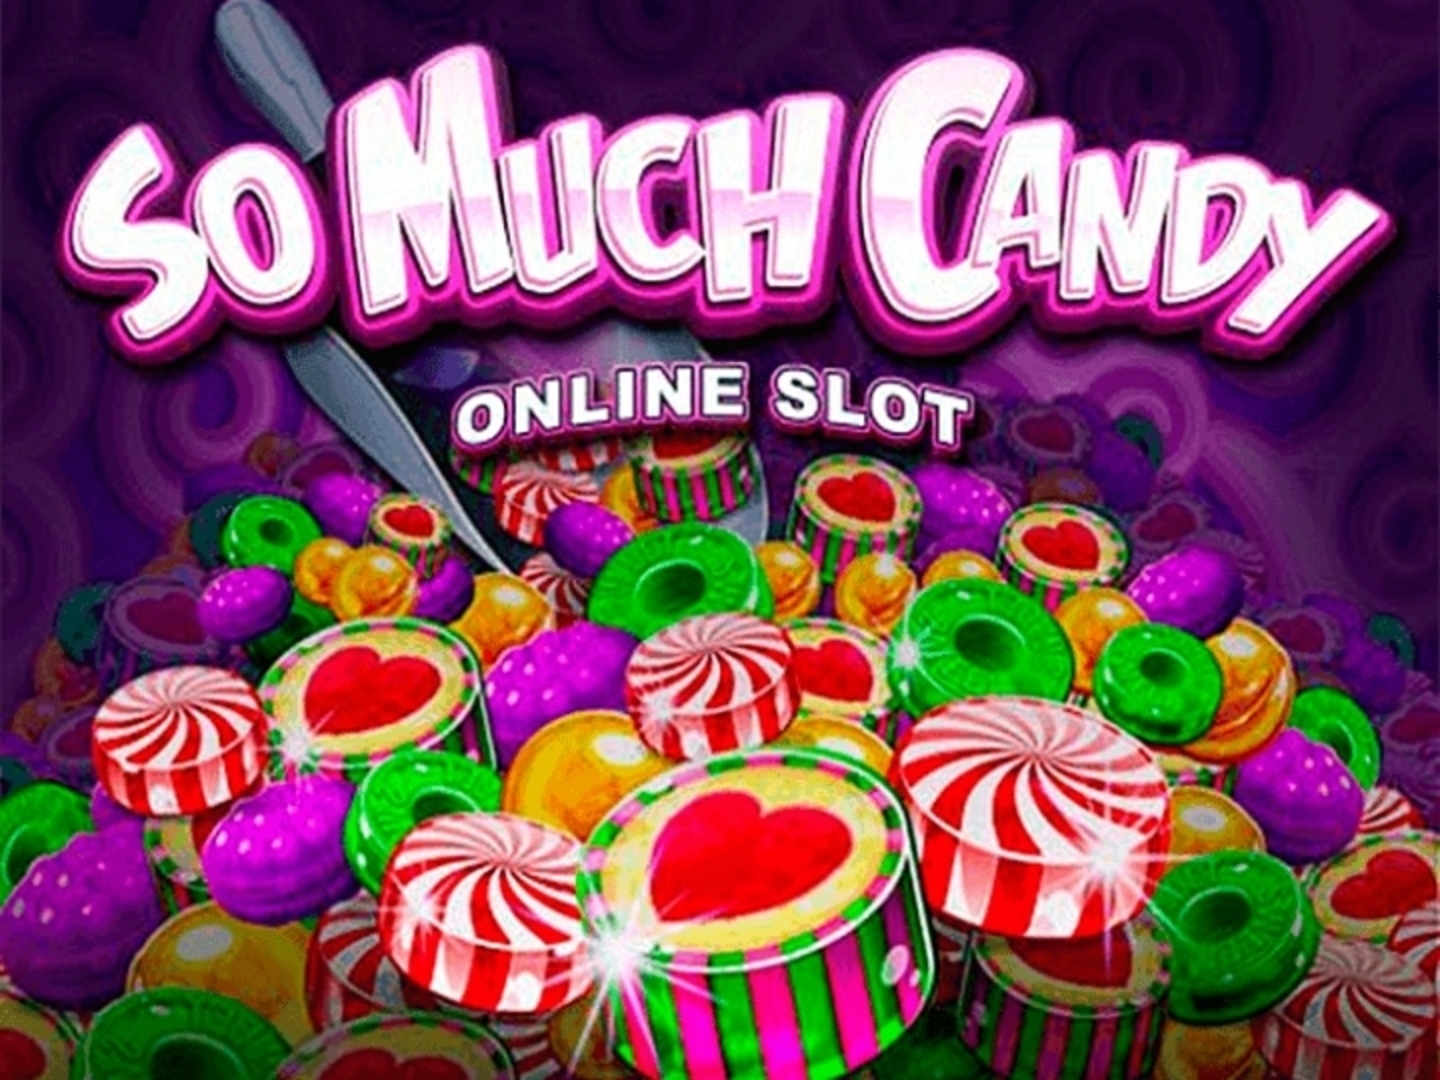 The So Much Candy Online Slot Demo Game by Microgaming